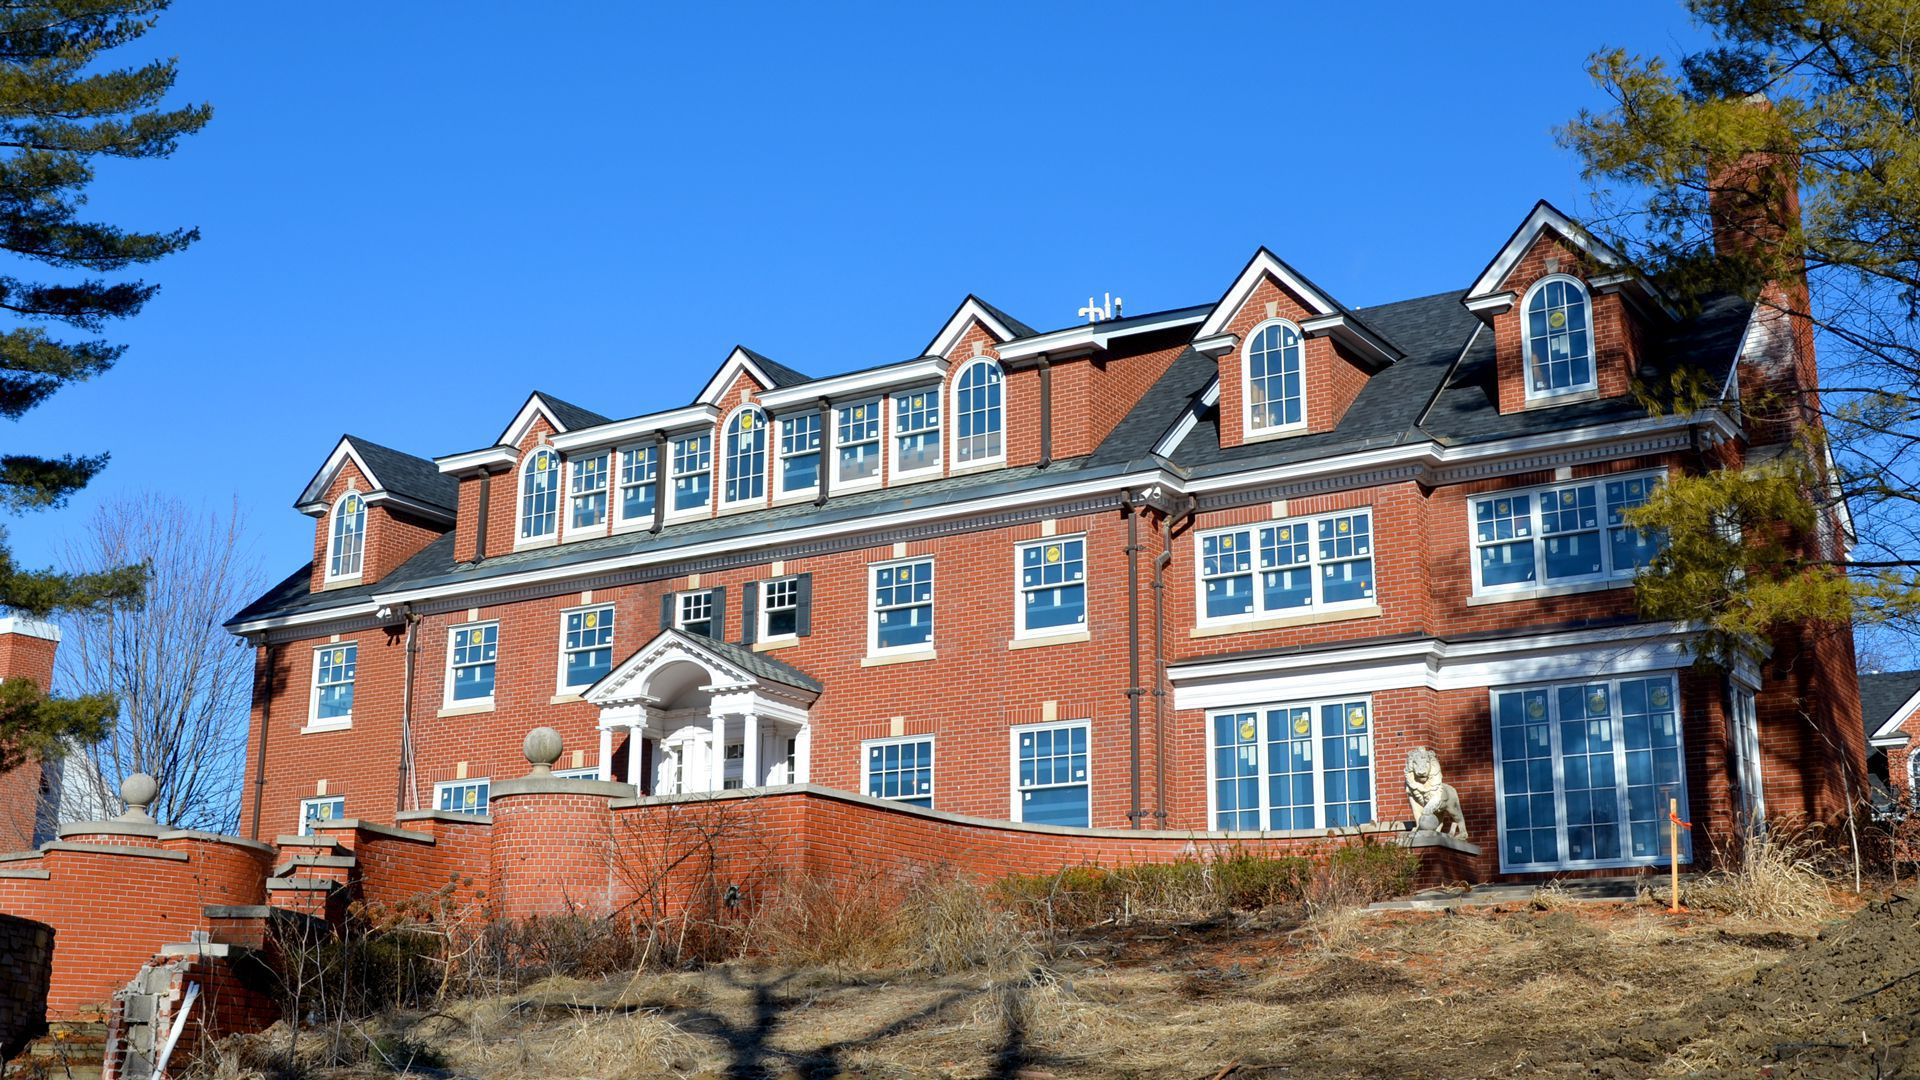 Brick house with four garret windows at the top and two floors visible behind a brick wall.